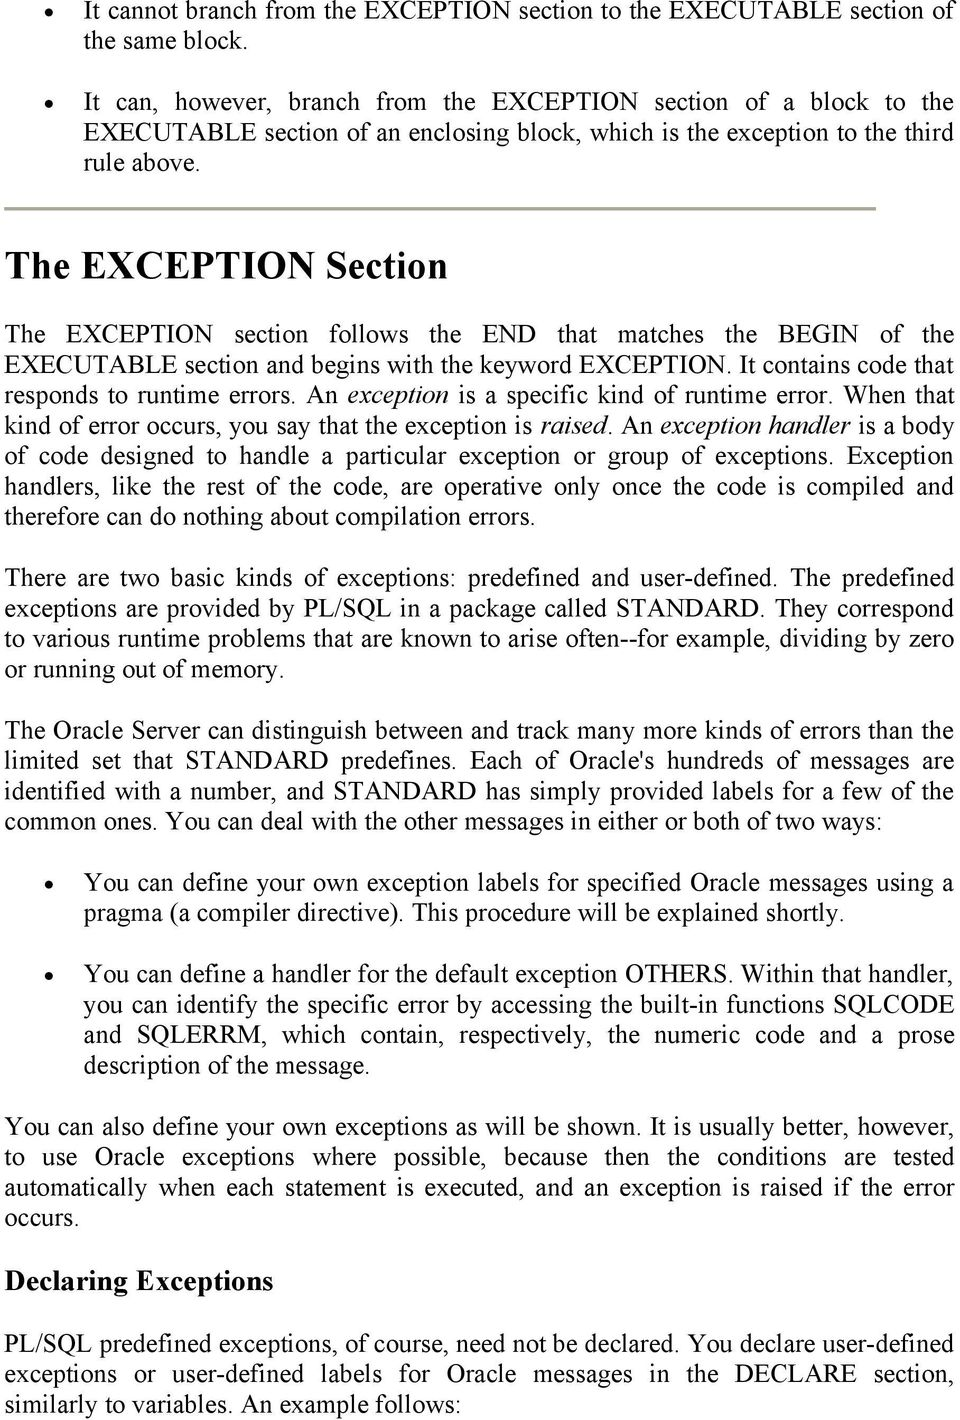 The EXCEPTION Section The EXCEPTION section follows the END that matches the BEGIN of the EXECUTABLE section and begins with the keyword EXCEPTION. It contains code that responds to runtime errors.